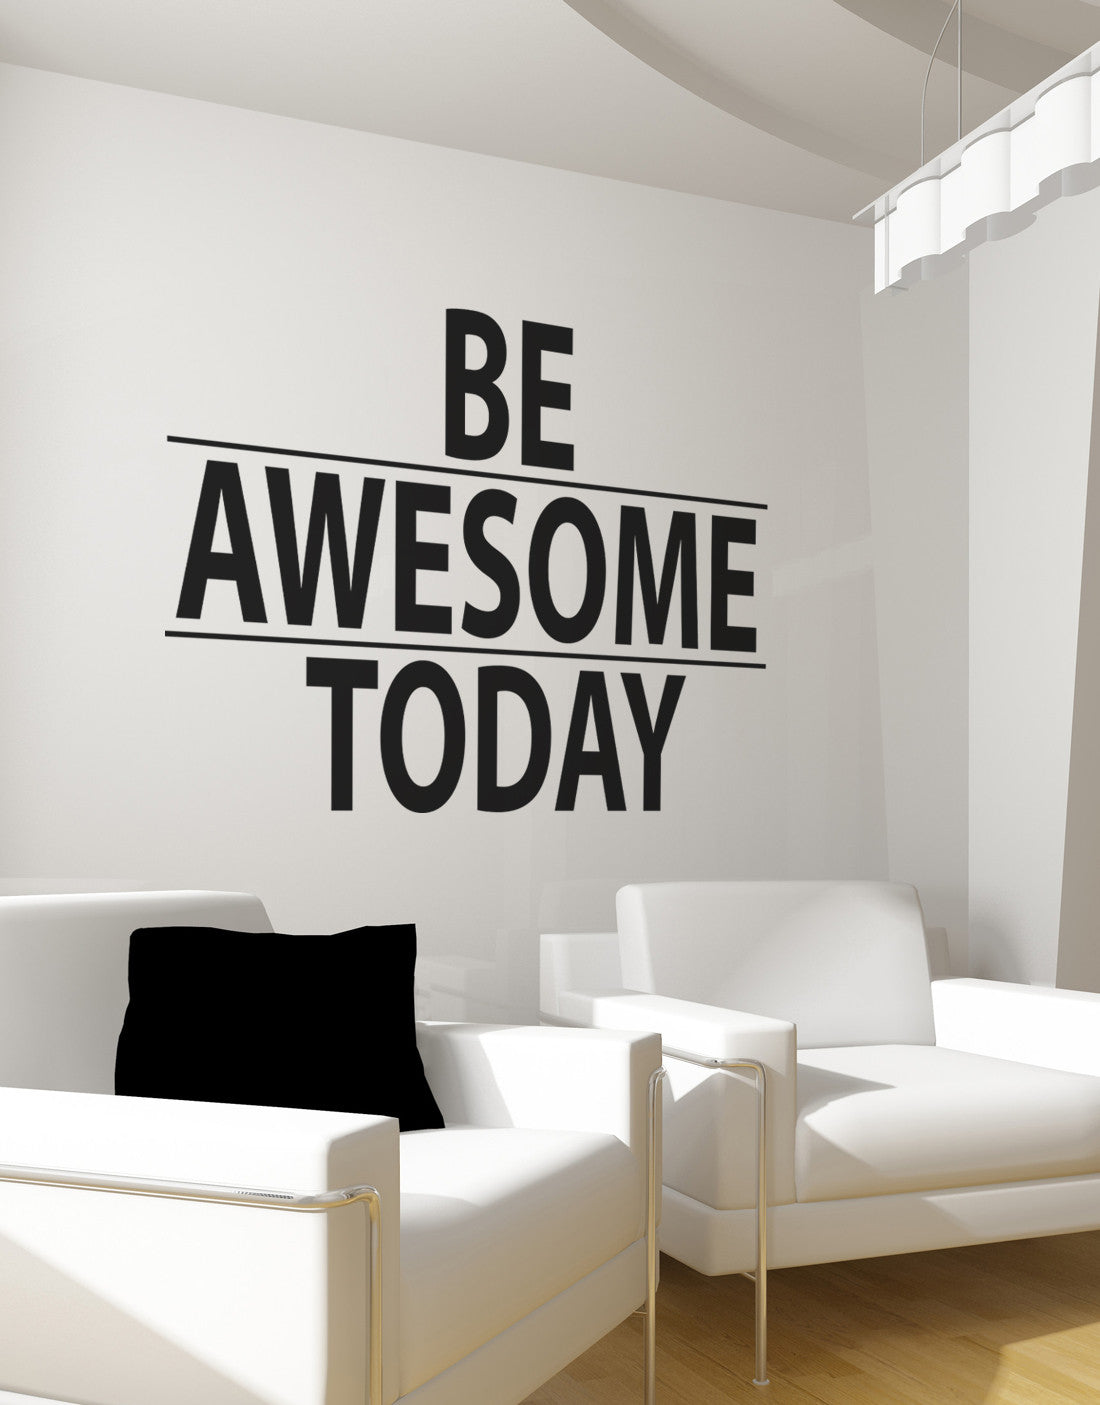 How to Put a Wall Sticker up